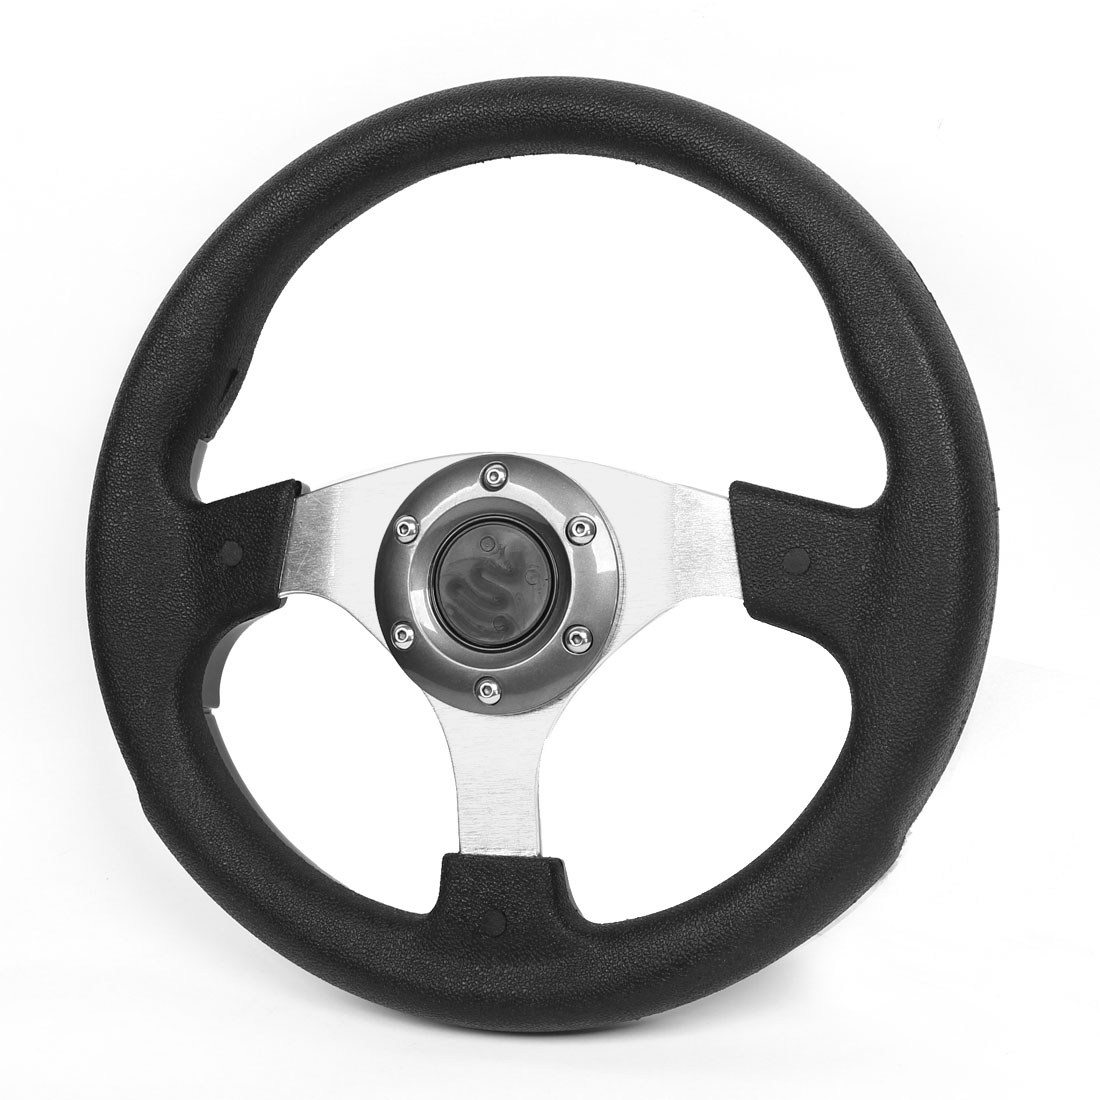 Faux Leather Wrapped 6 Holes Steering Wheel Black Gray for Car